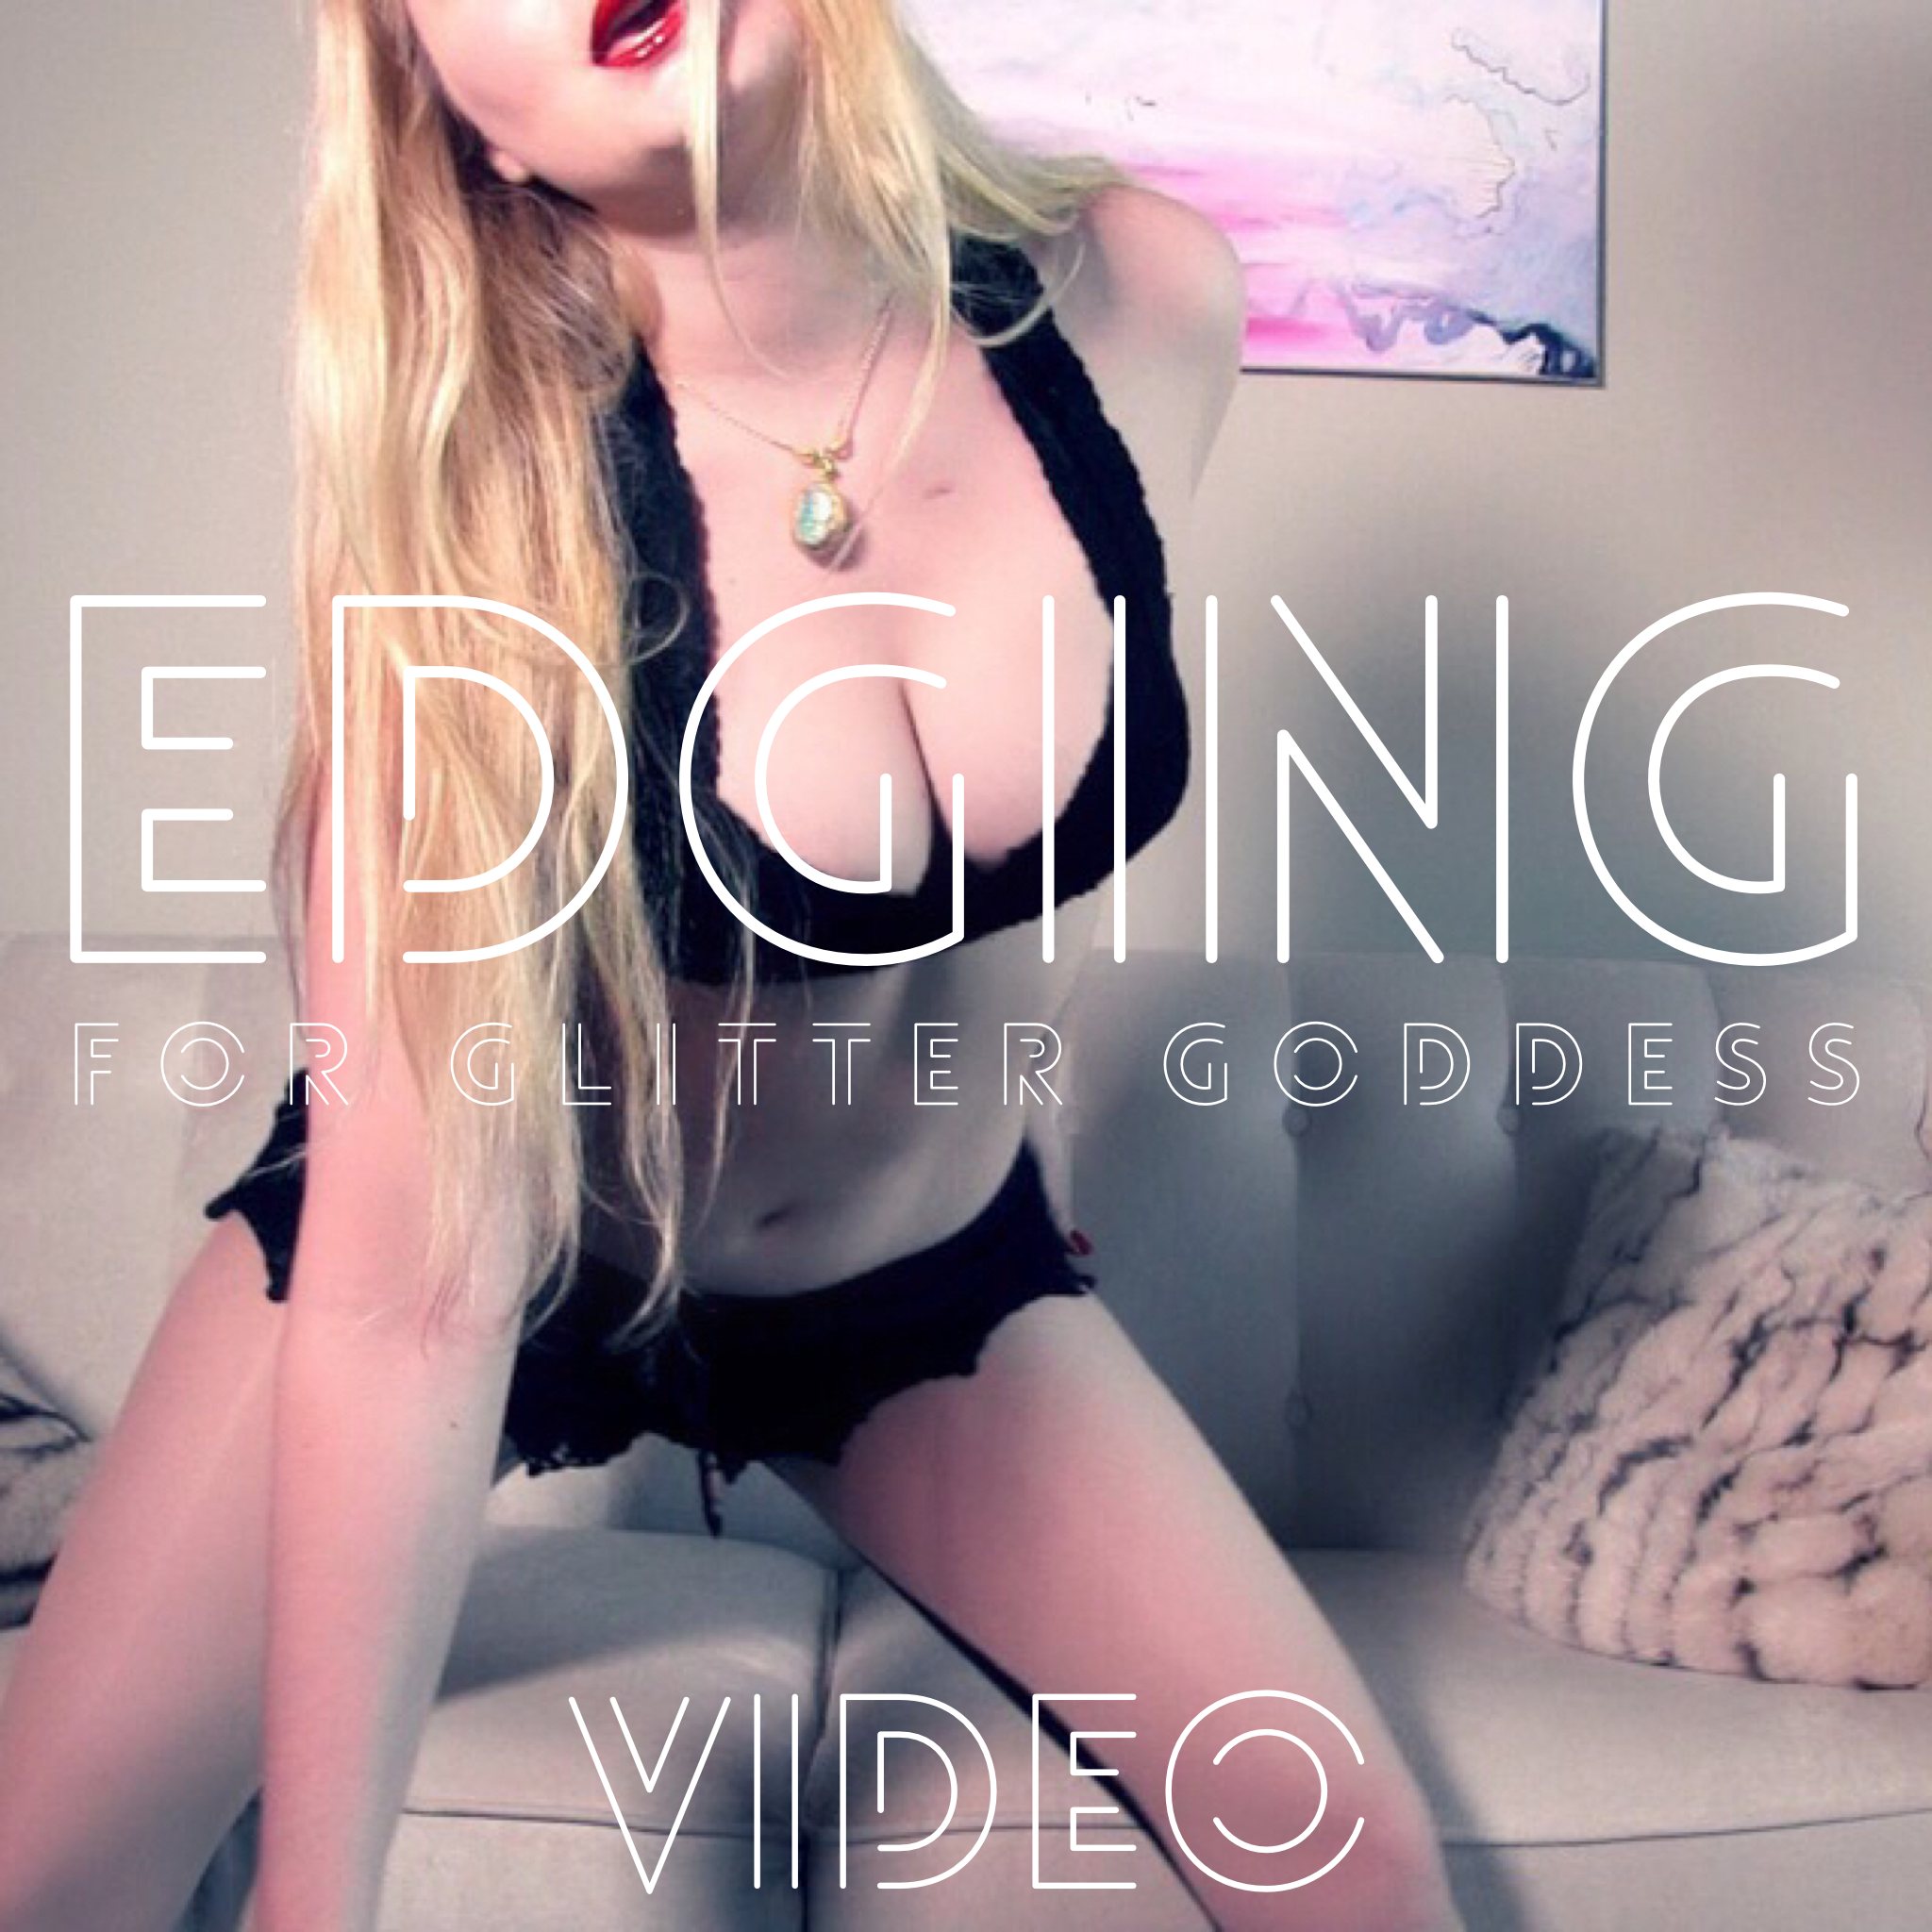 Edging with Glitter Goddess